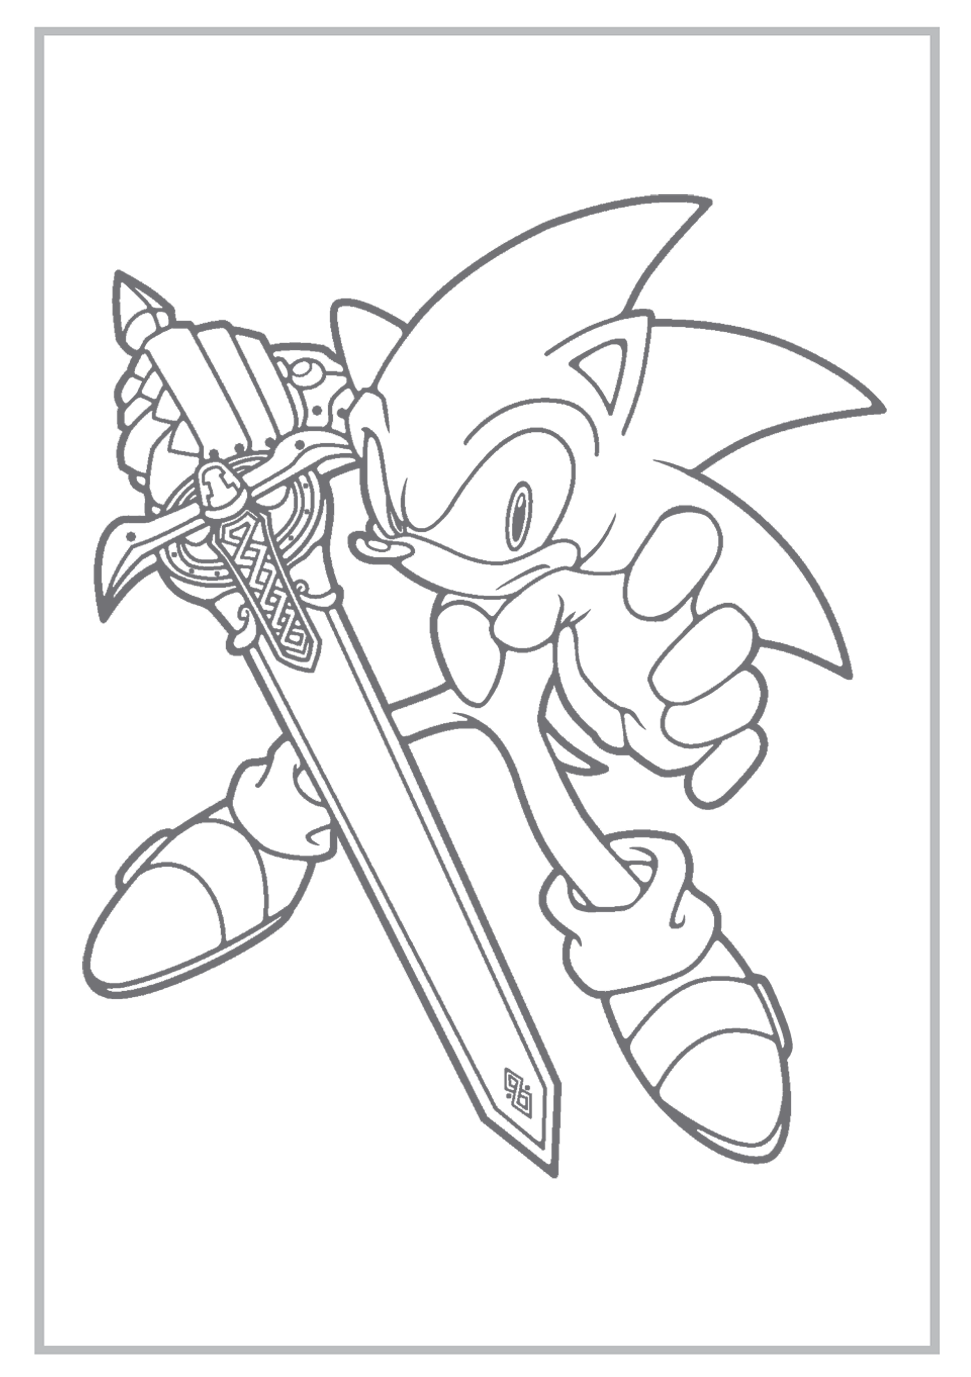 sonic coloring pages | Sonic the Hedgehog Coloring Pages Free ...